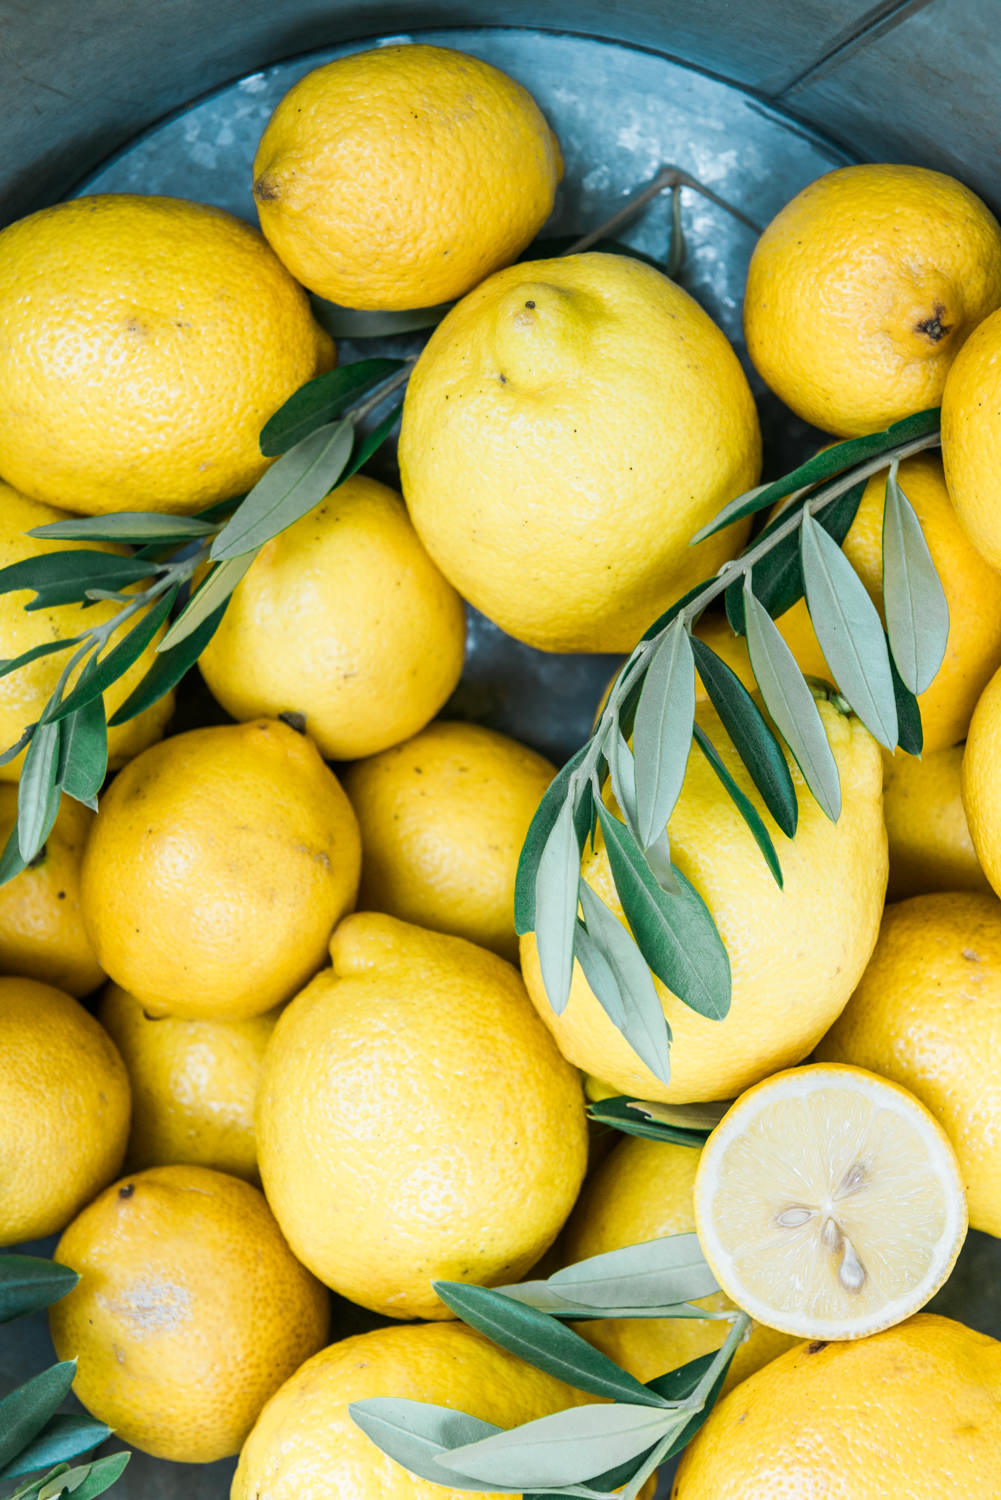 Lemons: fresh produce in Greece